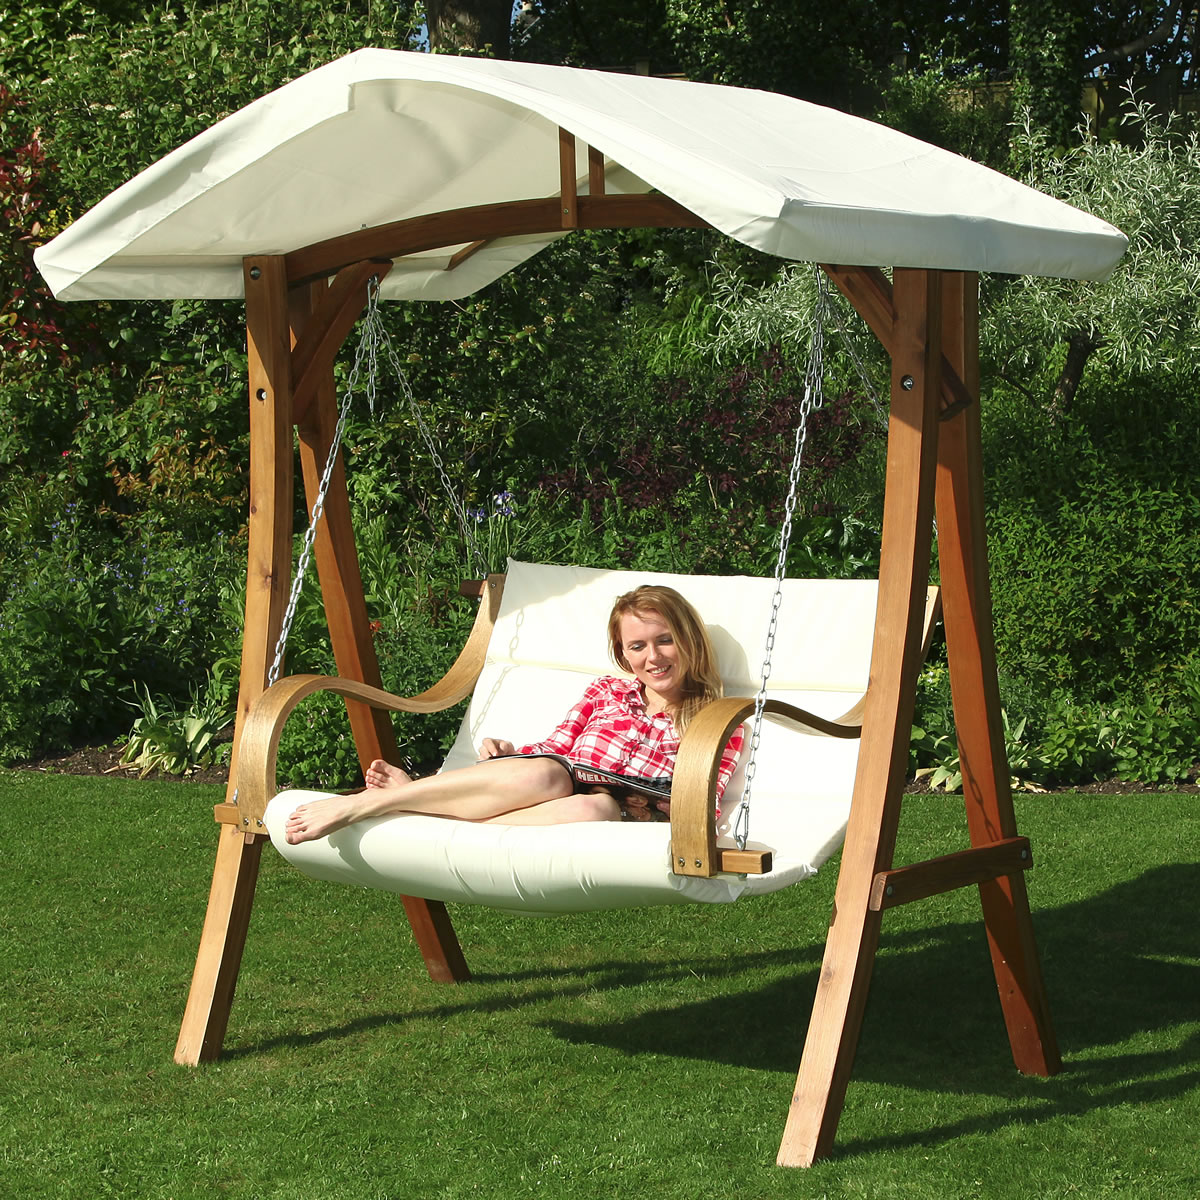 seater garden swing chair with canopy hl 6302 3 pictures to pin on